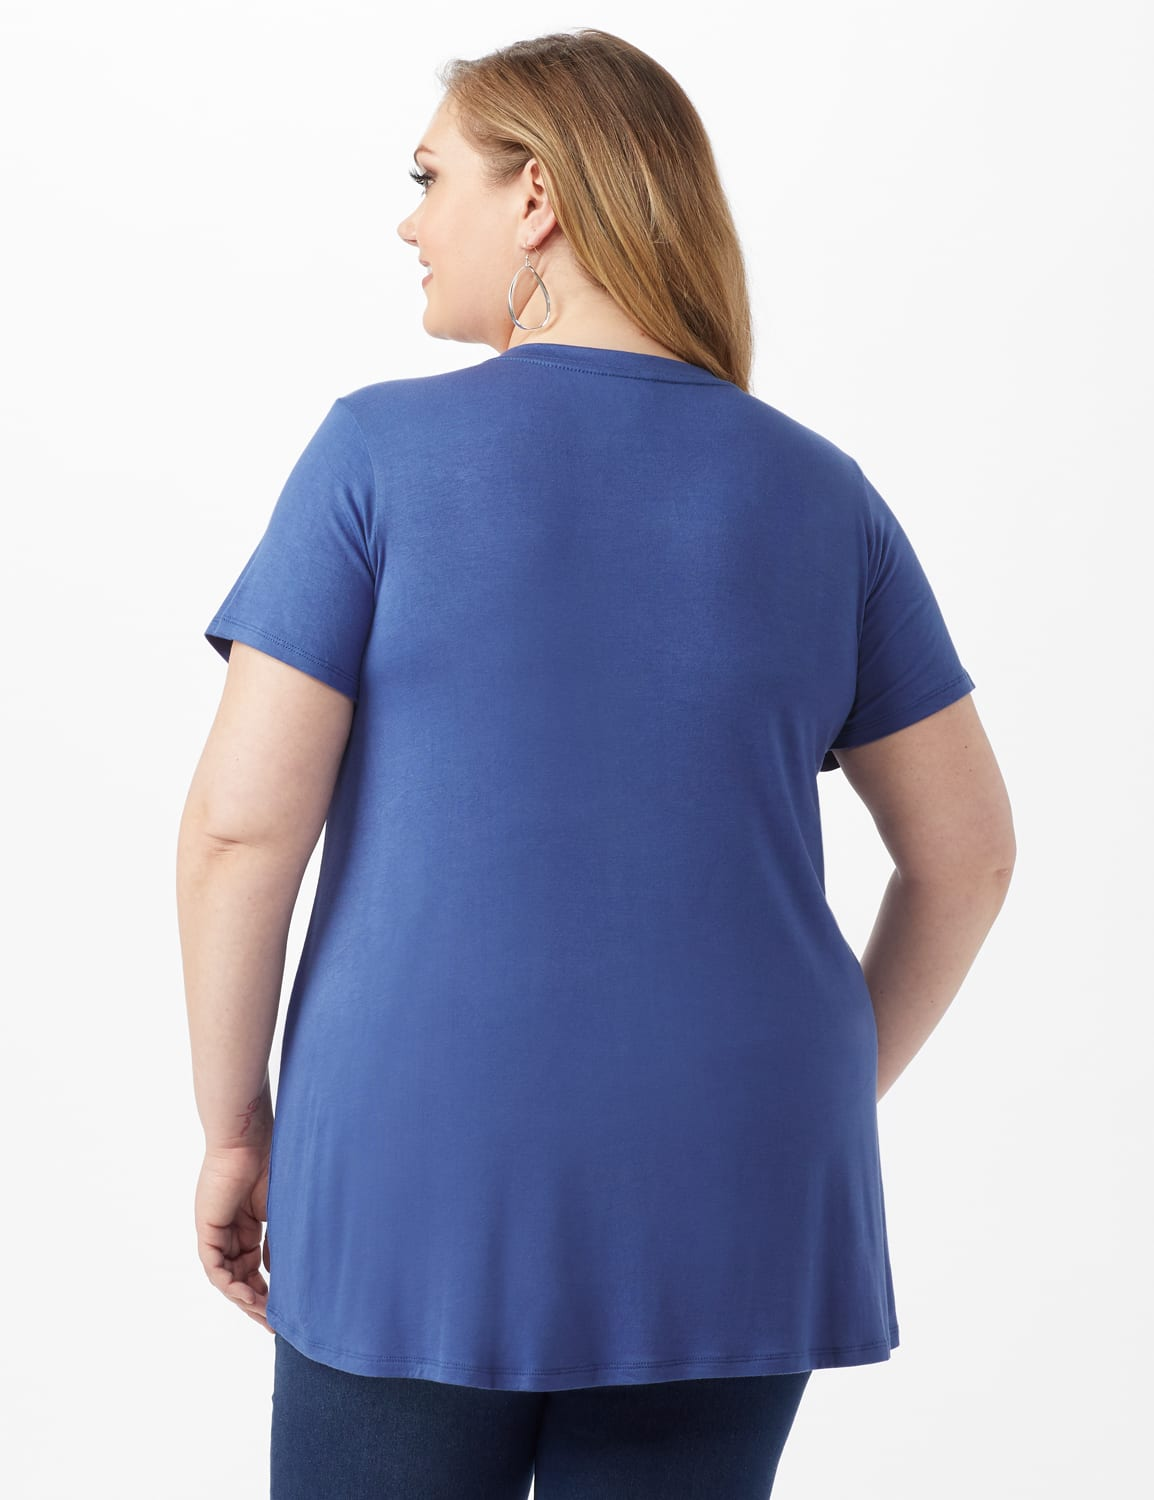 LOVE Hi-Lo Screen Tee - Plus - Indigo - Back